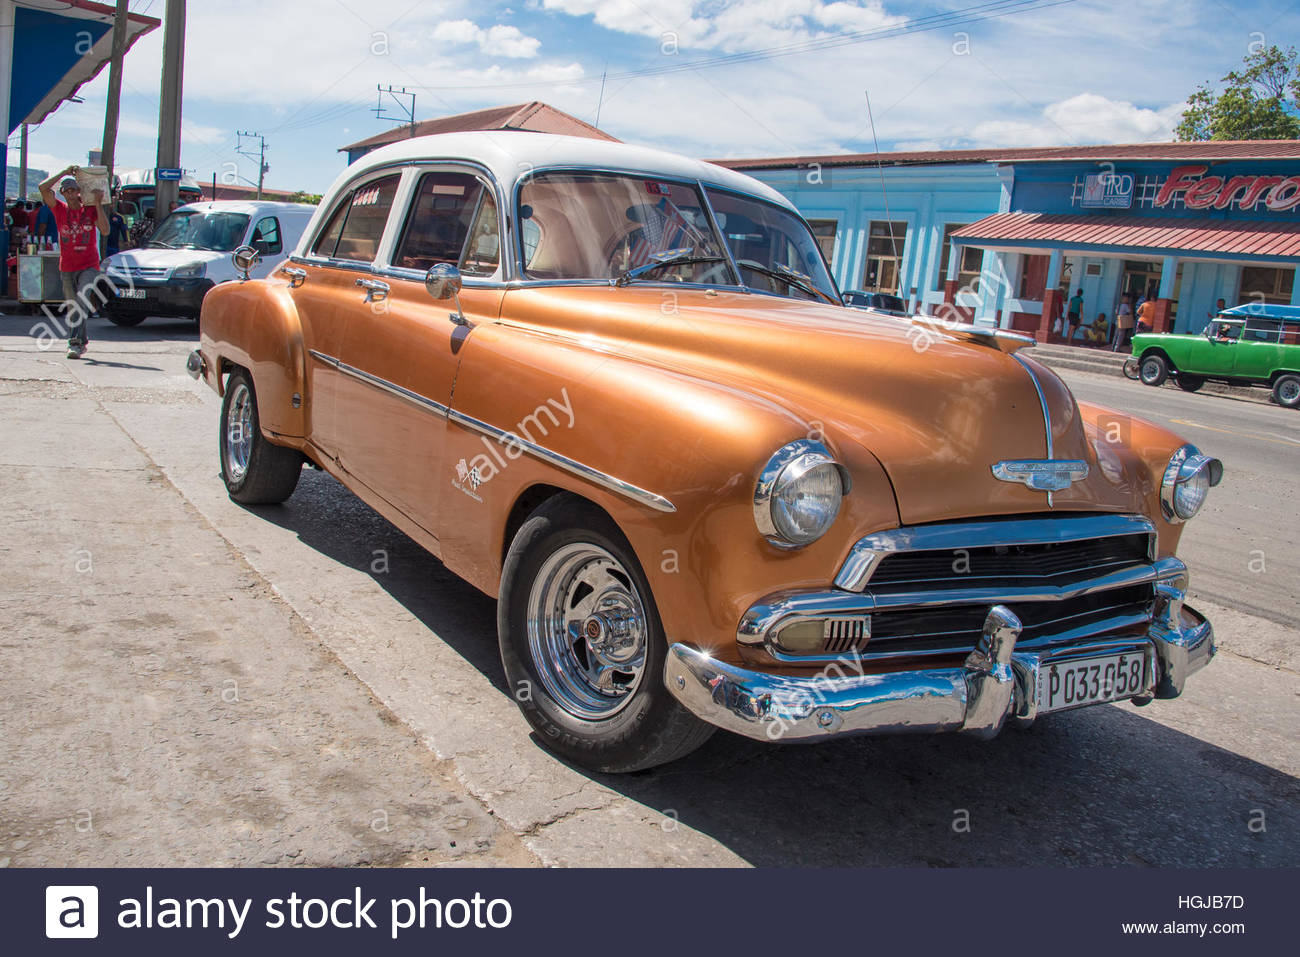 Cuban Classic Cars Orange Chevrolet Or Wide Angle View